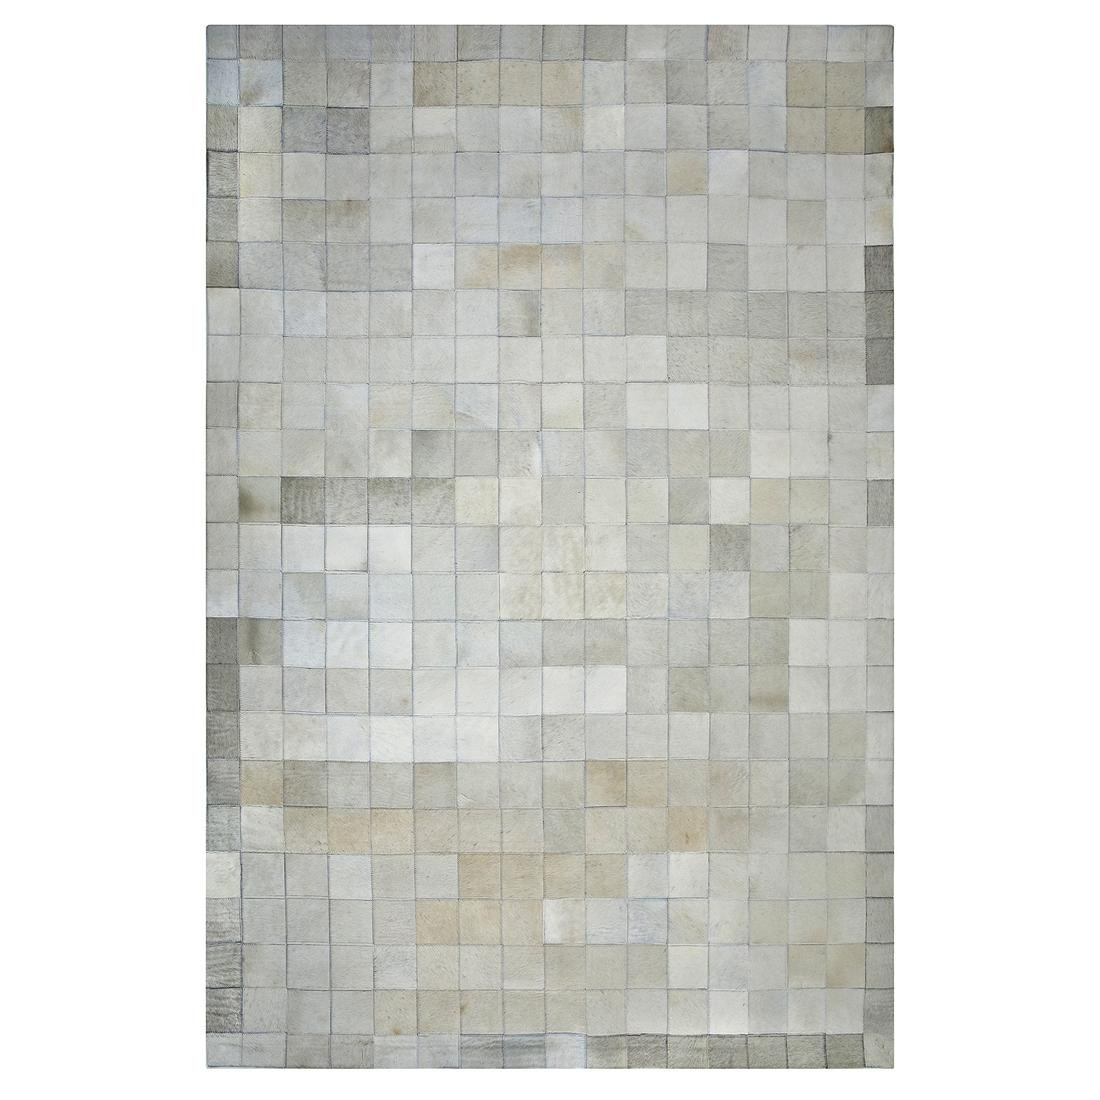 Tapete Couro Natural - 2,50x3,50